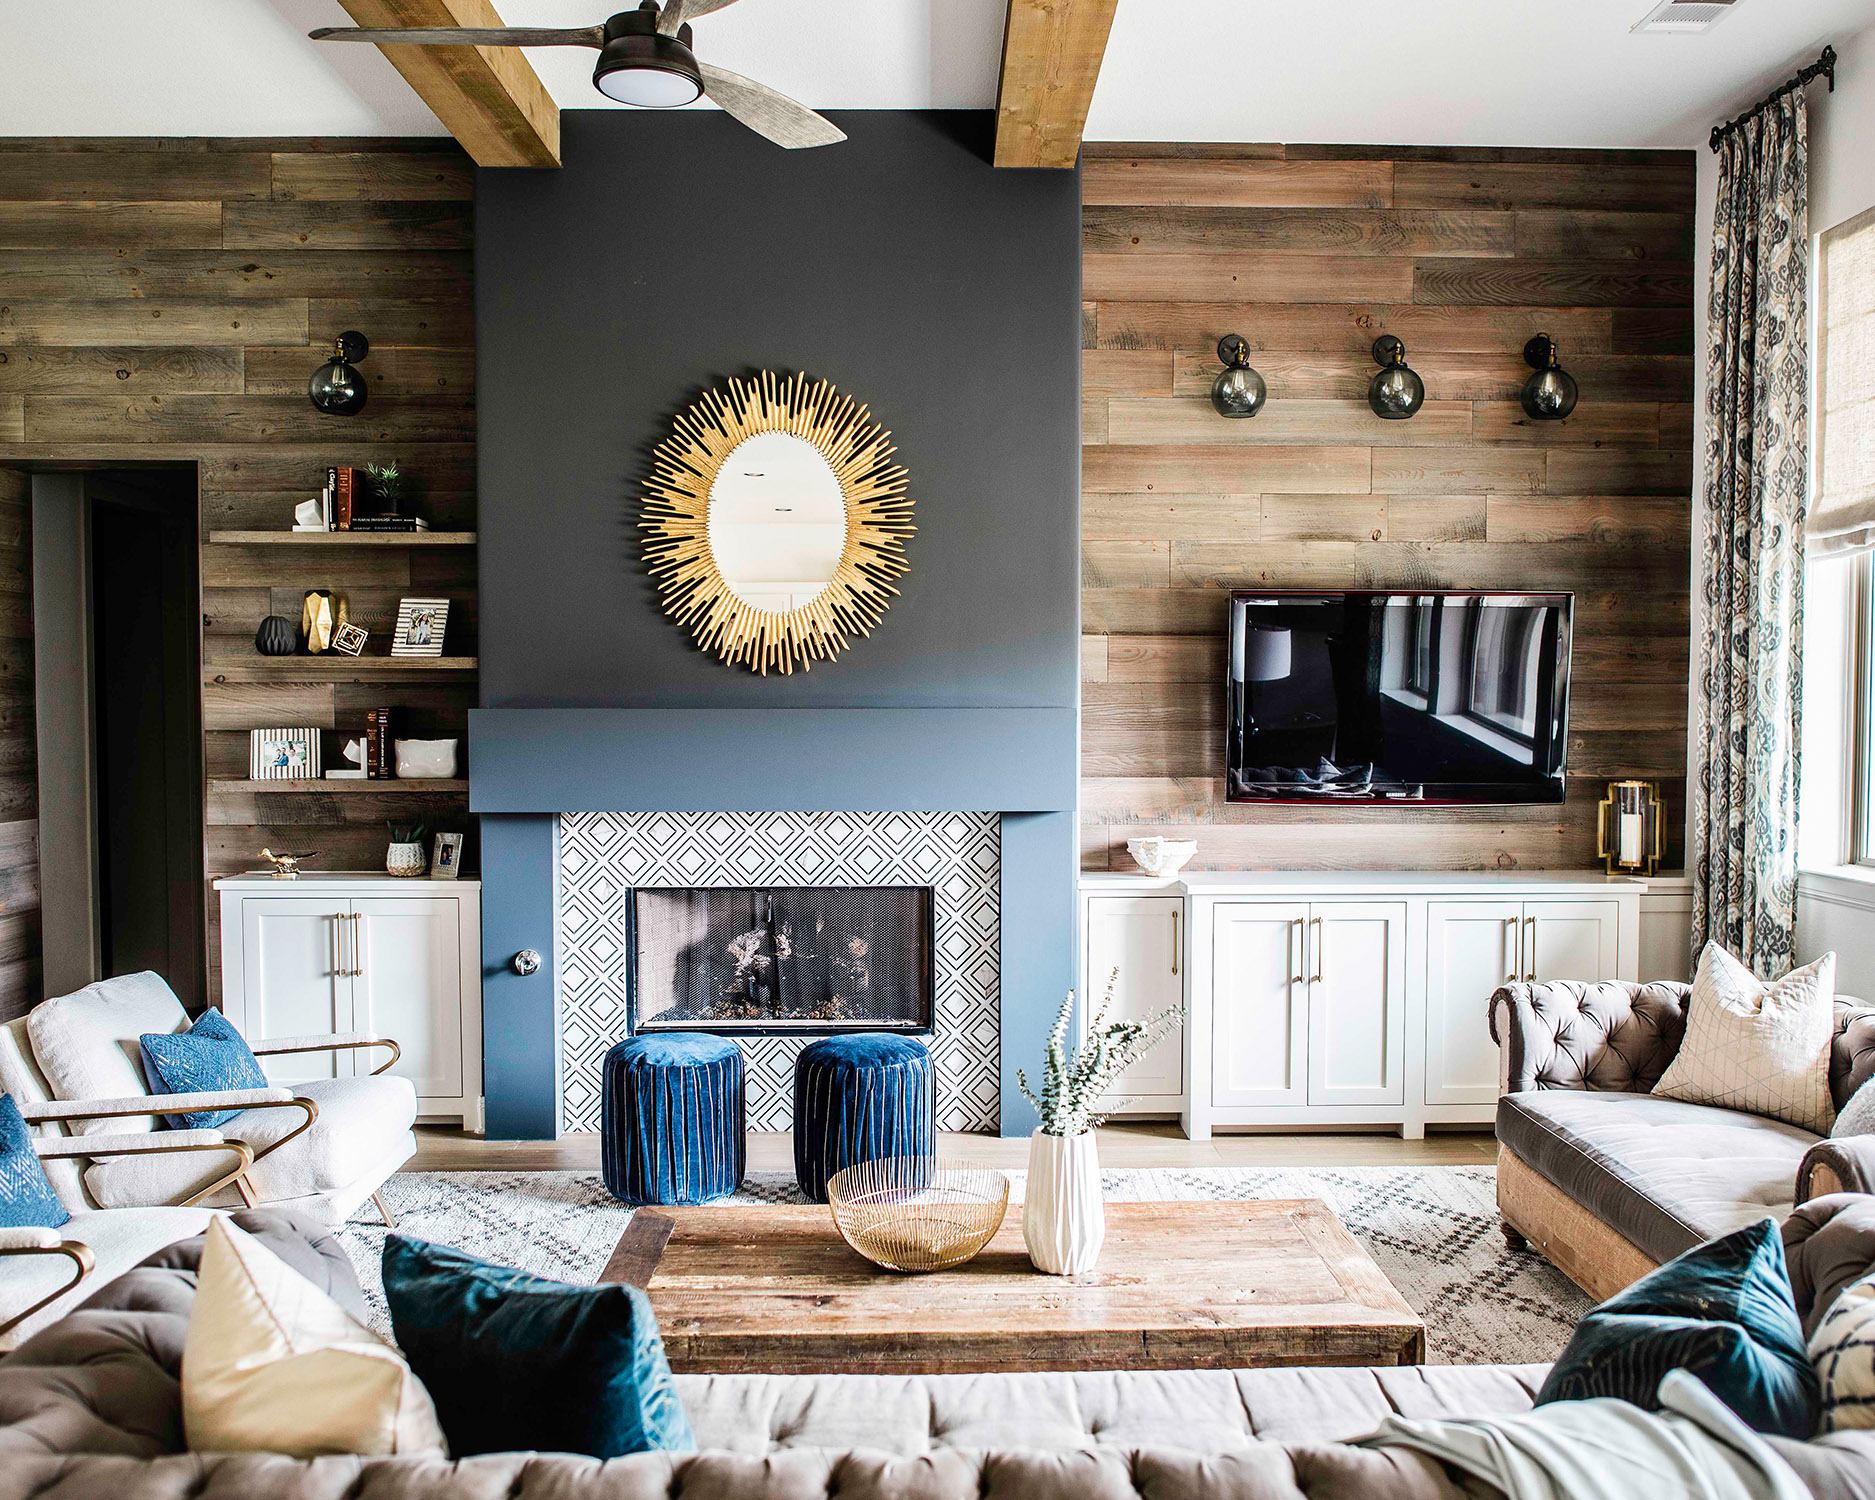 fireplace surround in blue